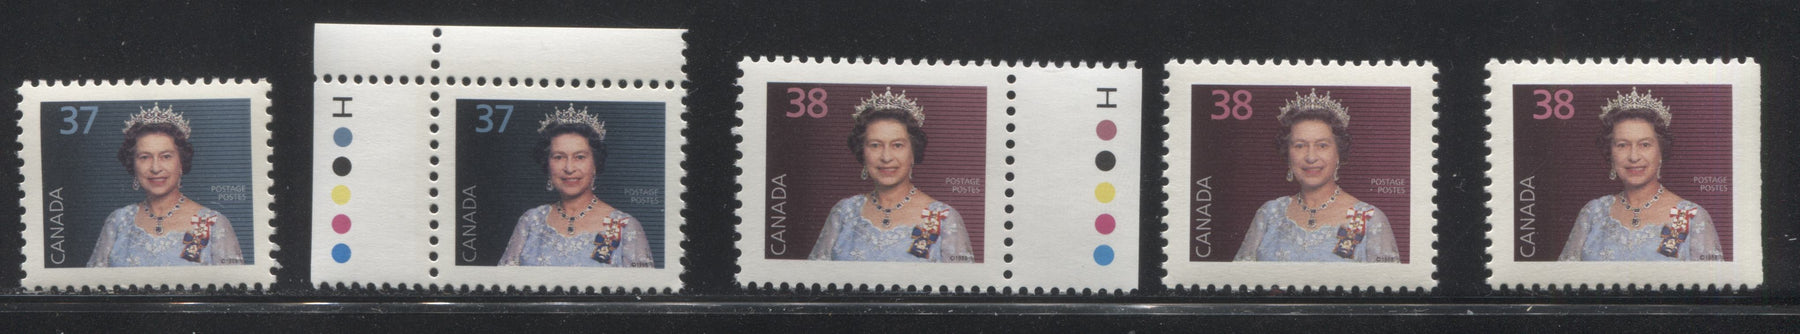 Canada #1162, 1164-1164as 37c-38c Queen Elizabeth II 1988-1991 Wildlife and Architecture Issue, a VFNH Specialized Group of 5 Stamps, Different Papers